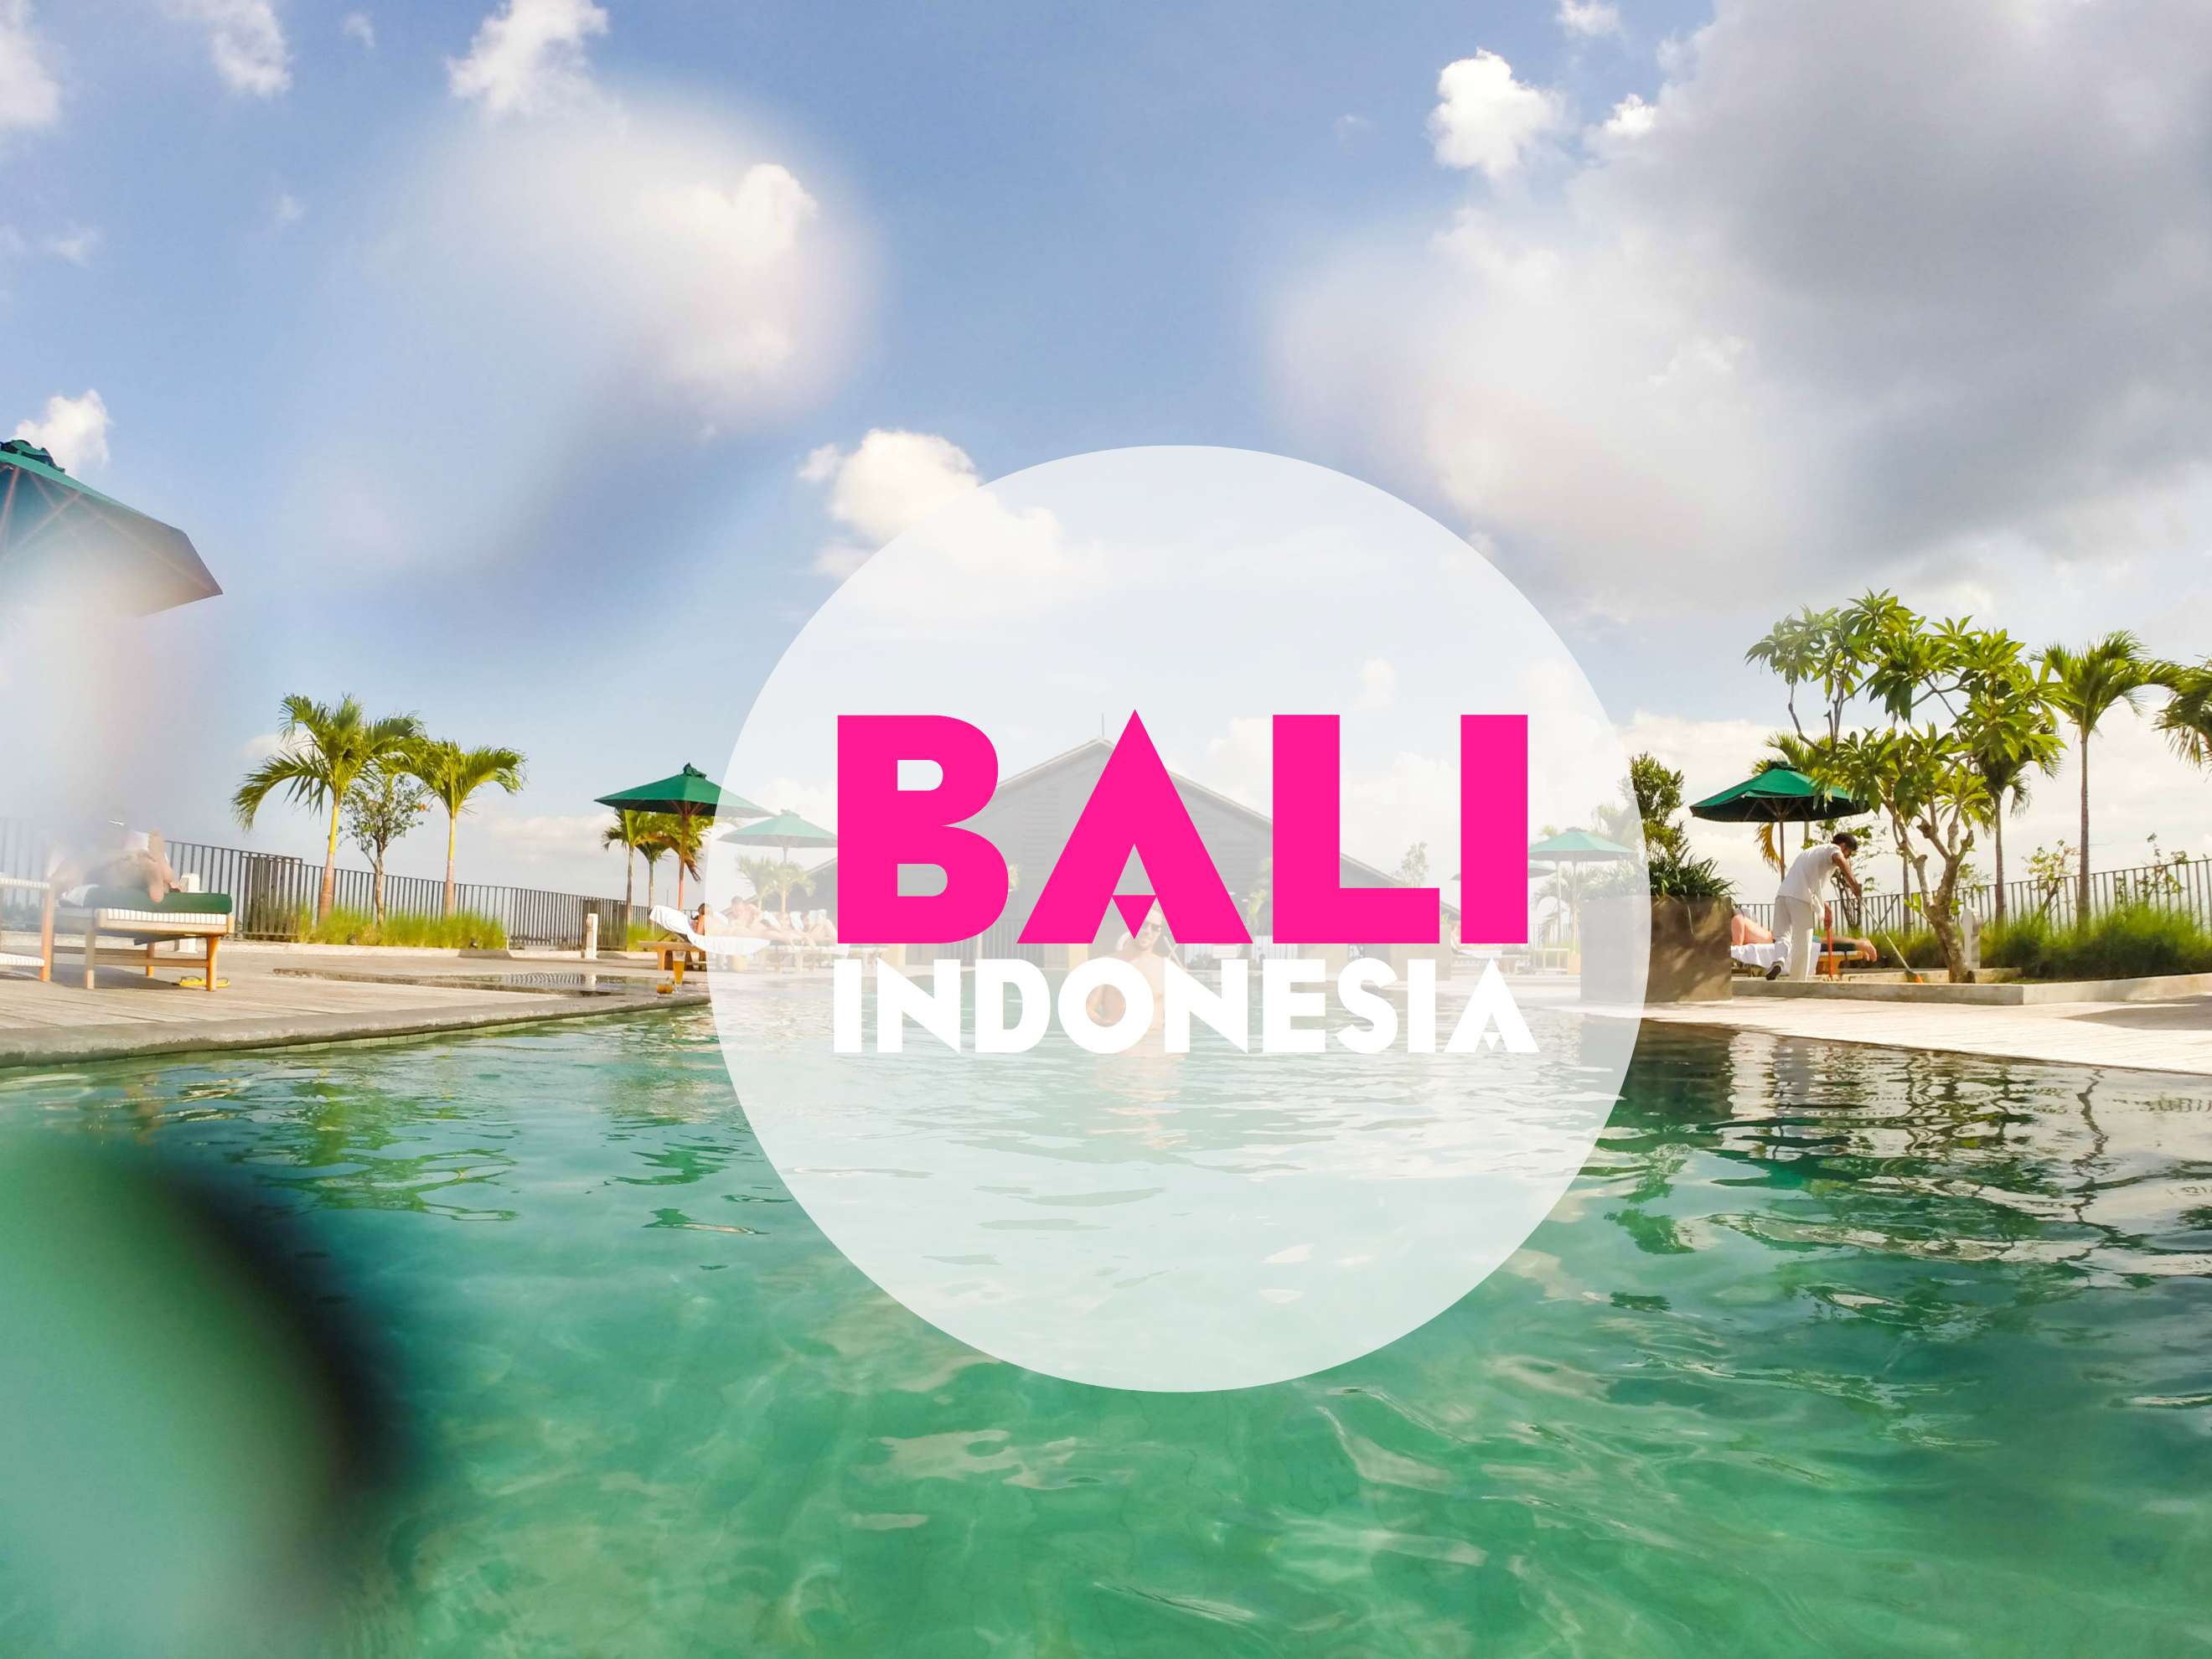 the ting's travel guide for bali, indonesia. - the tale of two